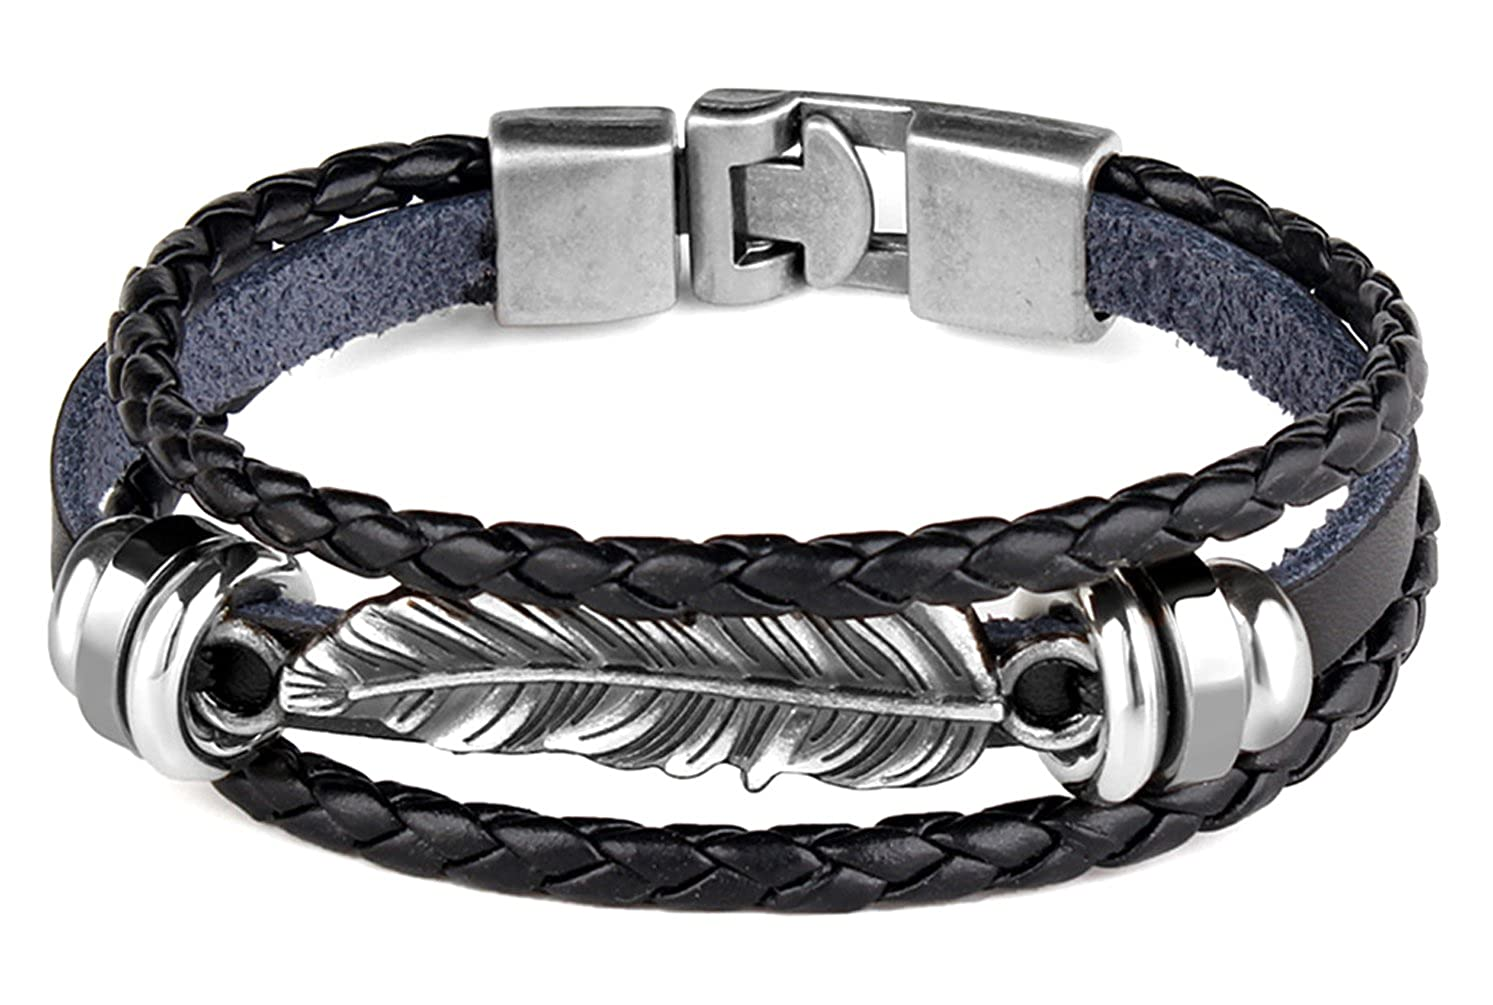 Xusamss Hip Hop Alloy Feather Bead Leather Bangle Buckle Bracelet,7.0inches